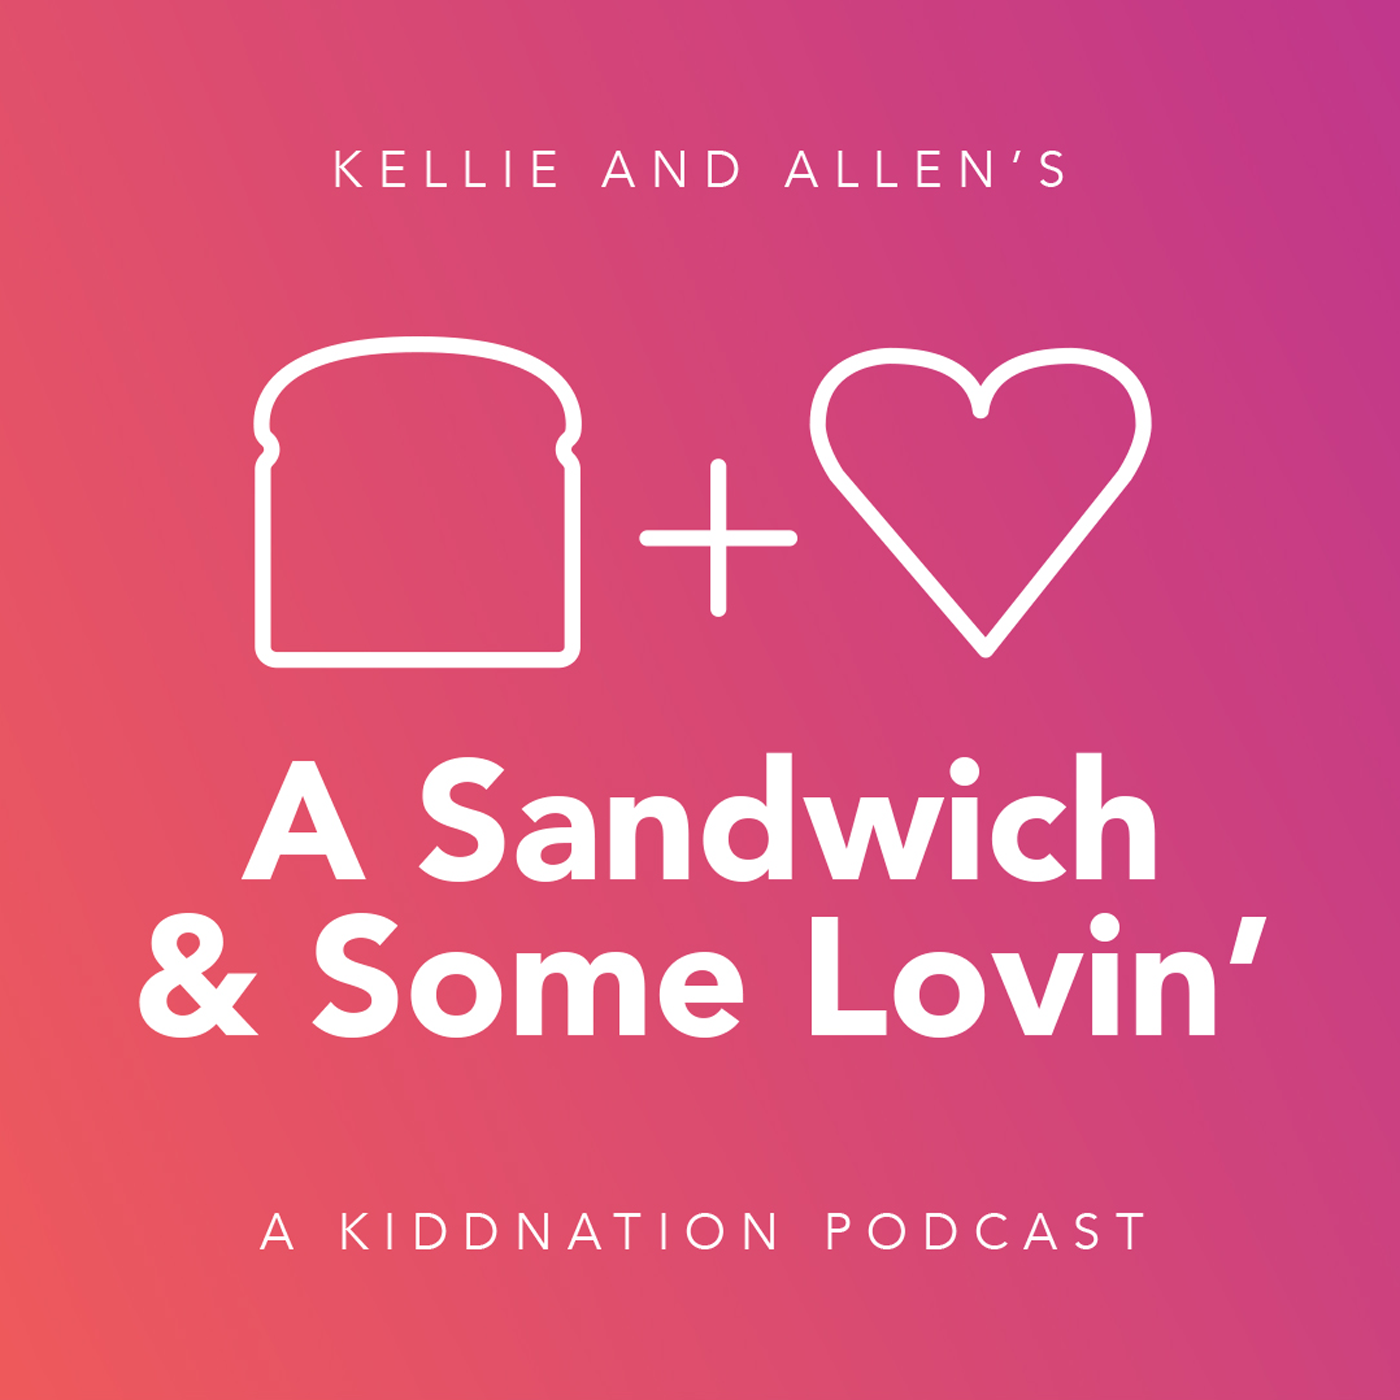 A Sandwich and Some Lovin' | Listen via Stitcher for Podcasts